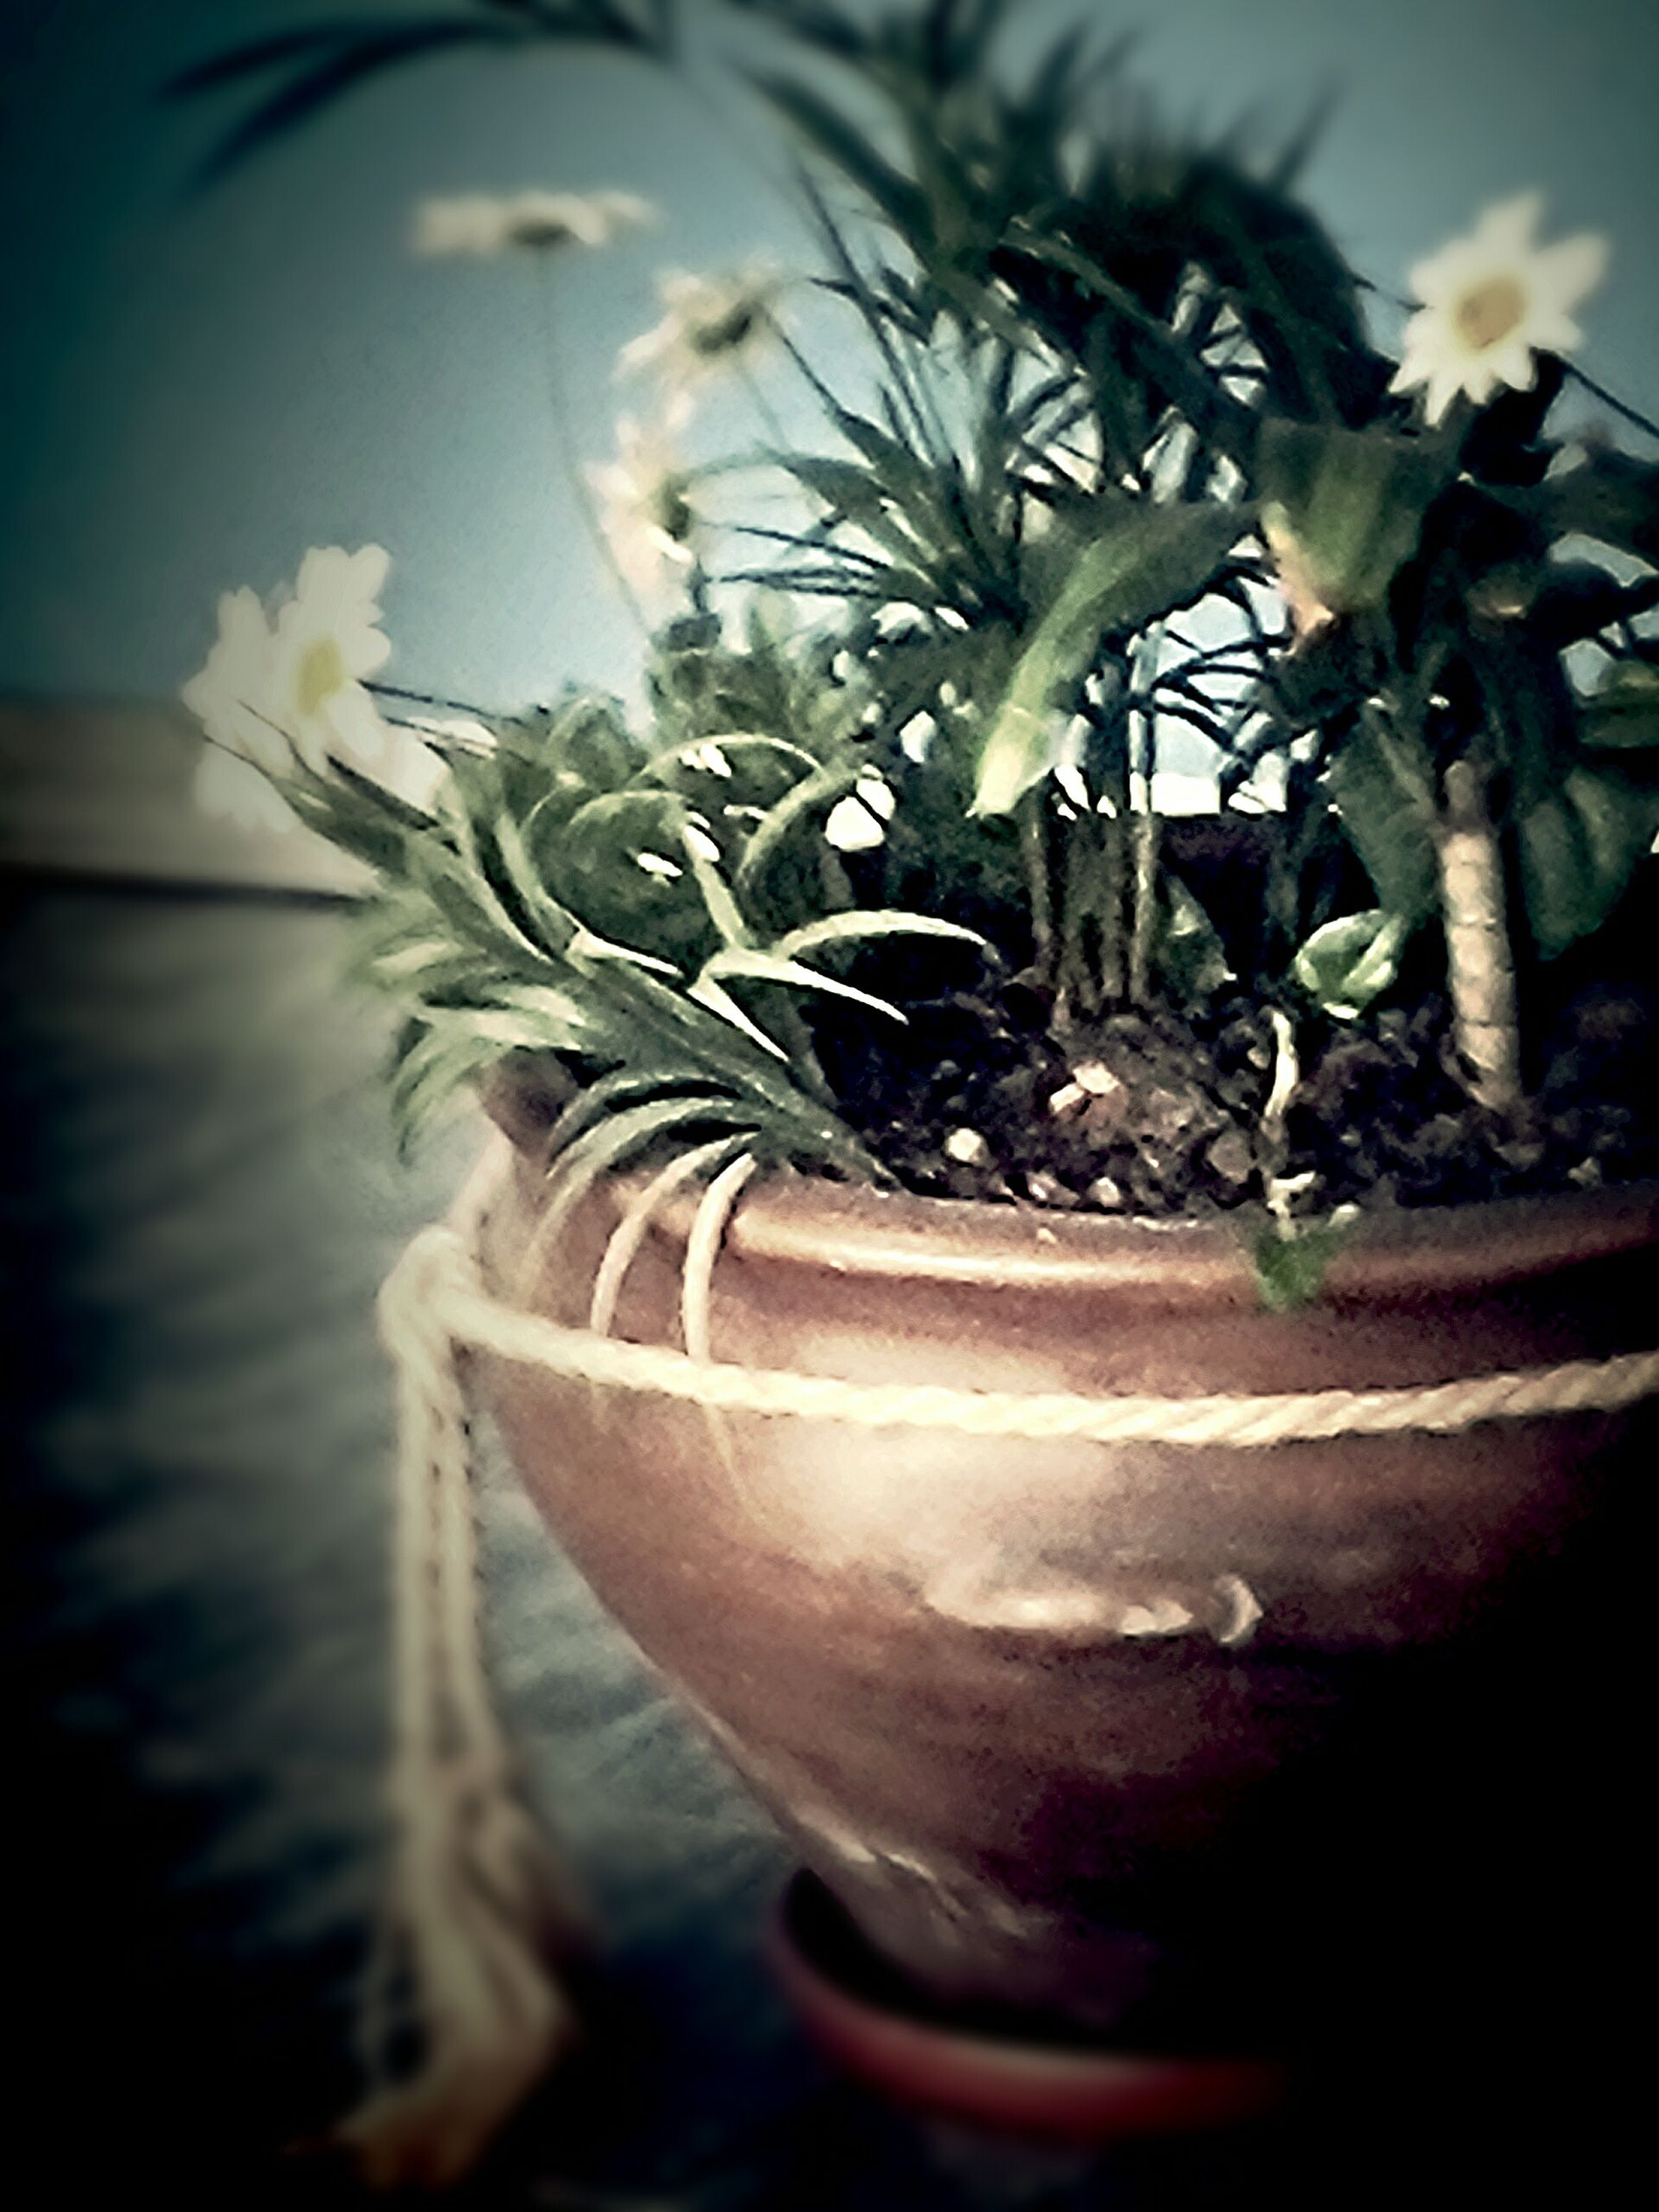 indoors, close-up, plant, potted plant, growth, vase, glass - material, flower, freshness, focus on foreground, fragility, leaf, home interior, selective focus, transparent, table, nature, no people, still life, window